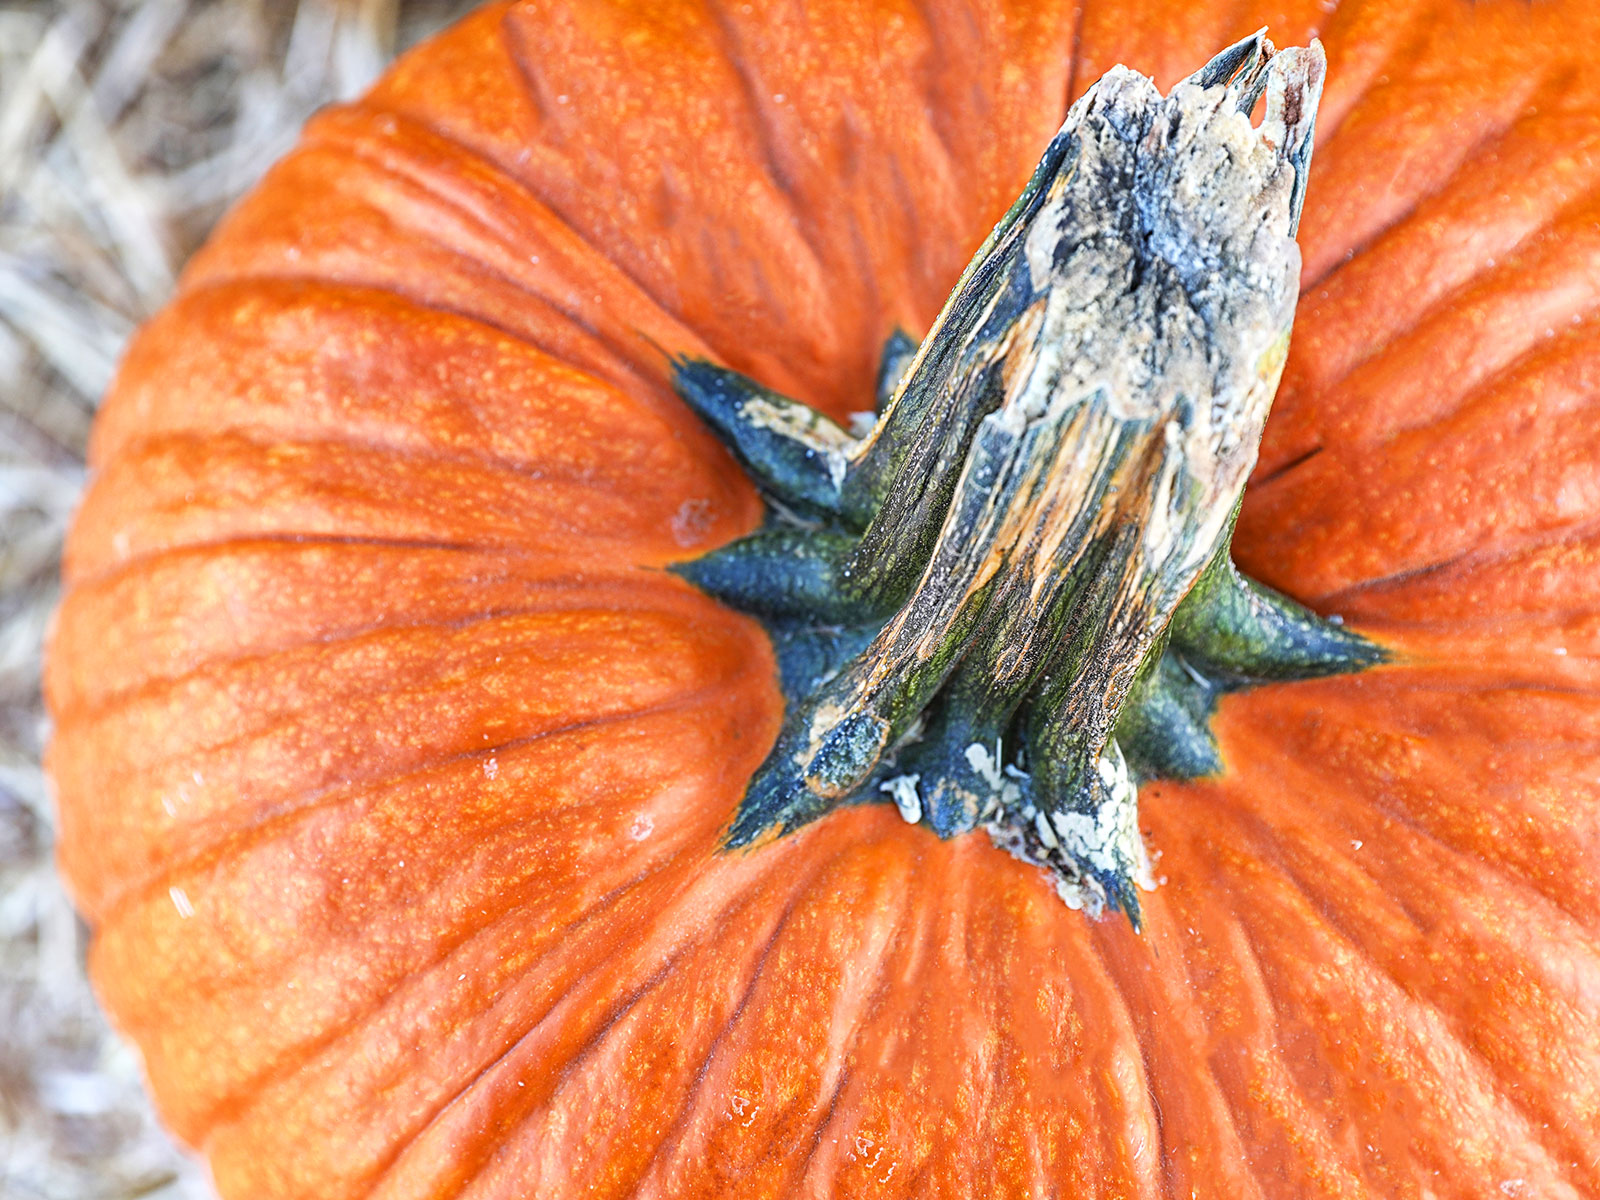 giant pumpkin records at weigh off